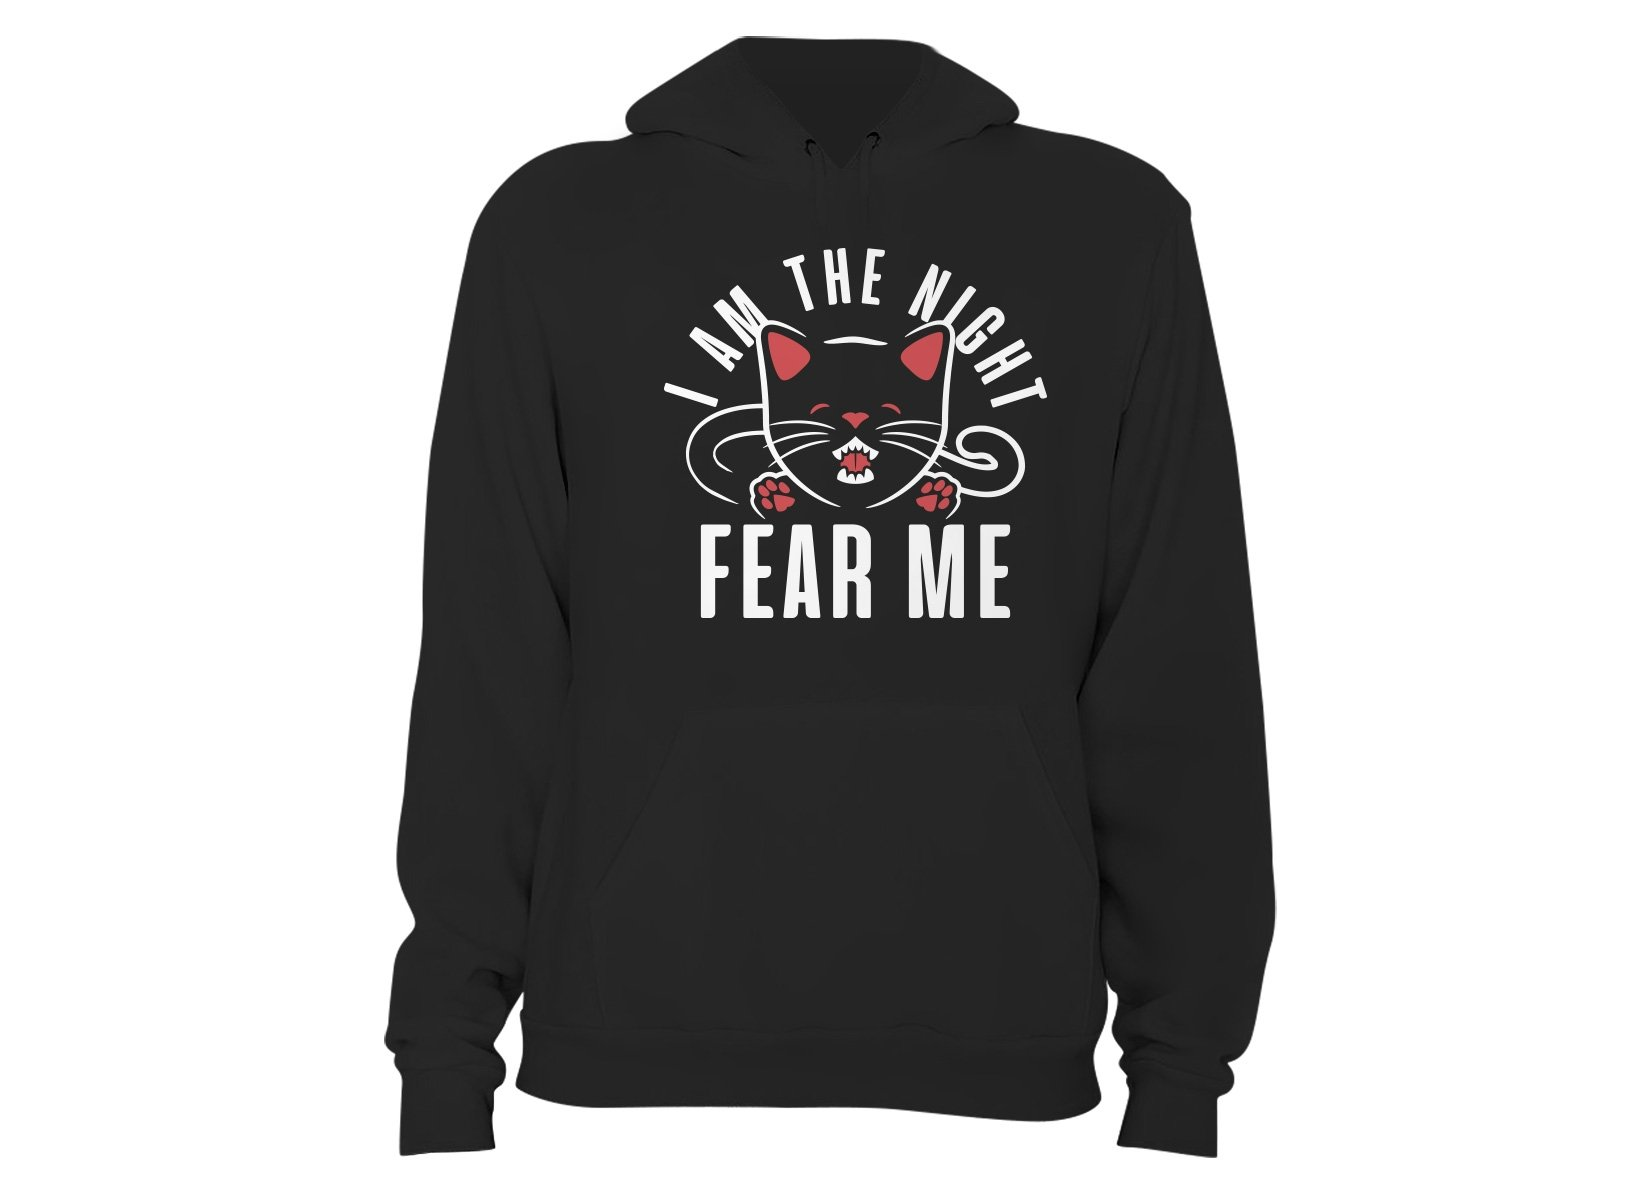 I Am The Night Fear Me on Hoodie